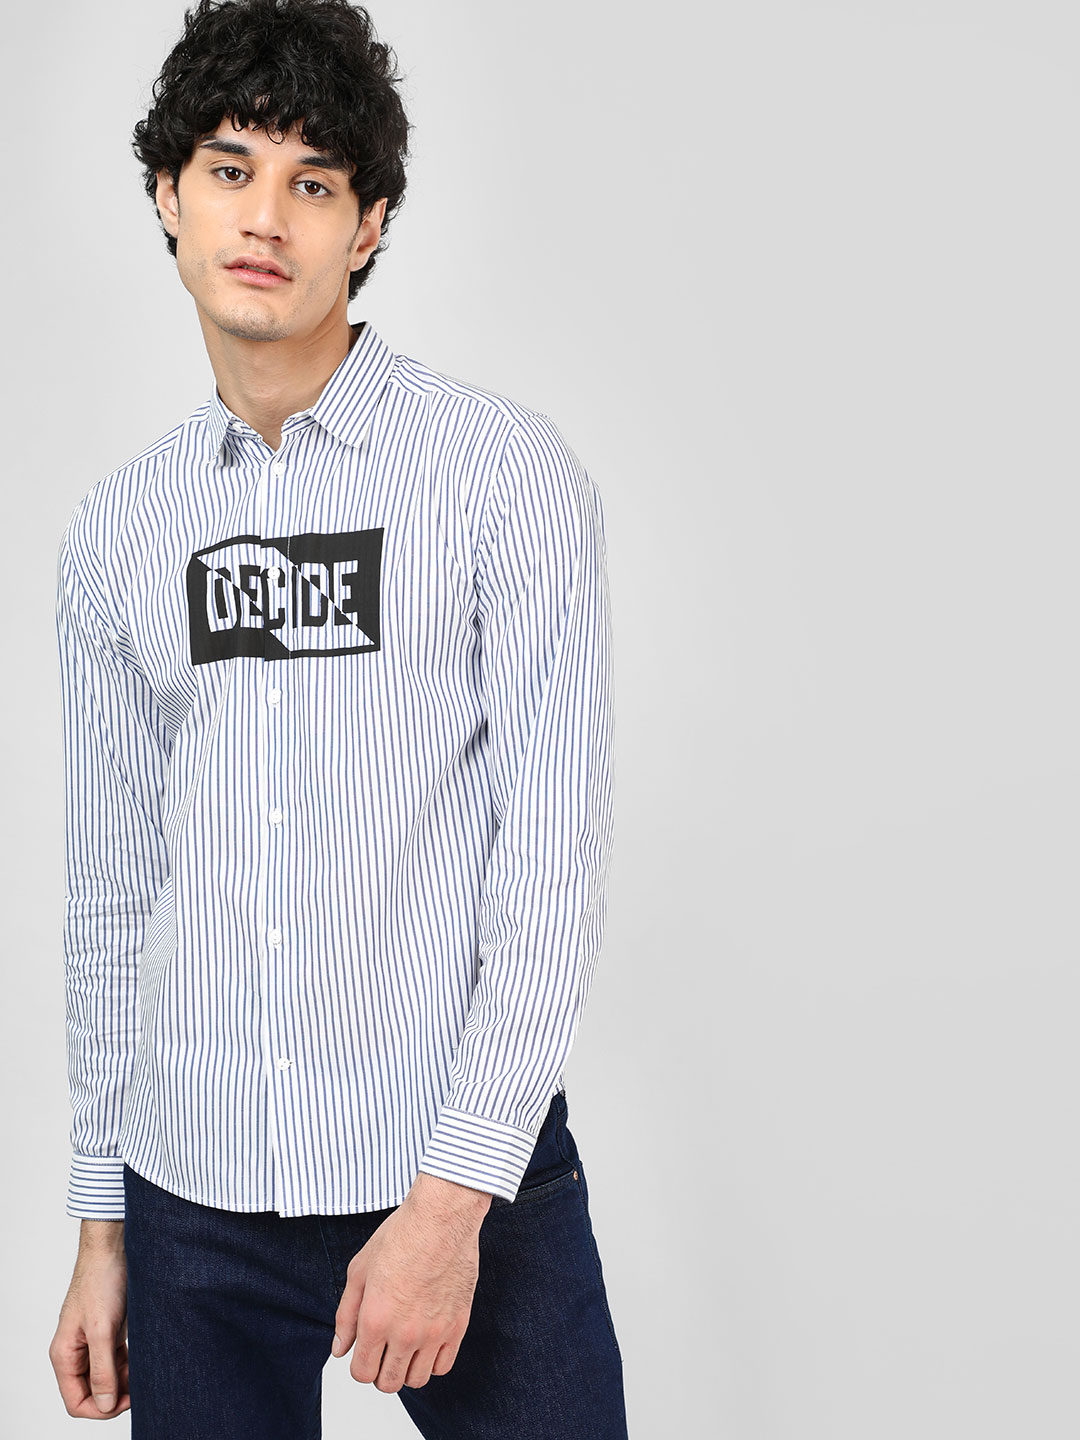 Bolt Of The Good Stuff White Slogan Print Striped Shirt 1